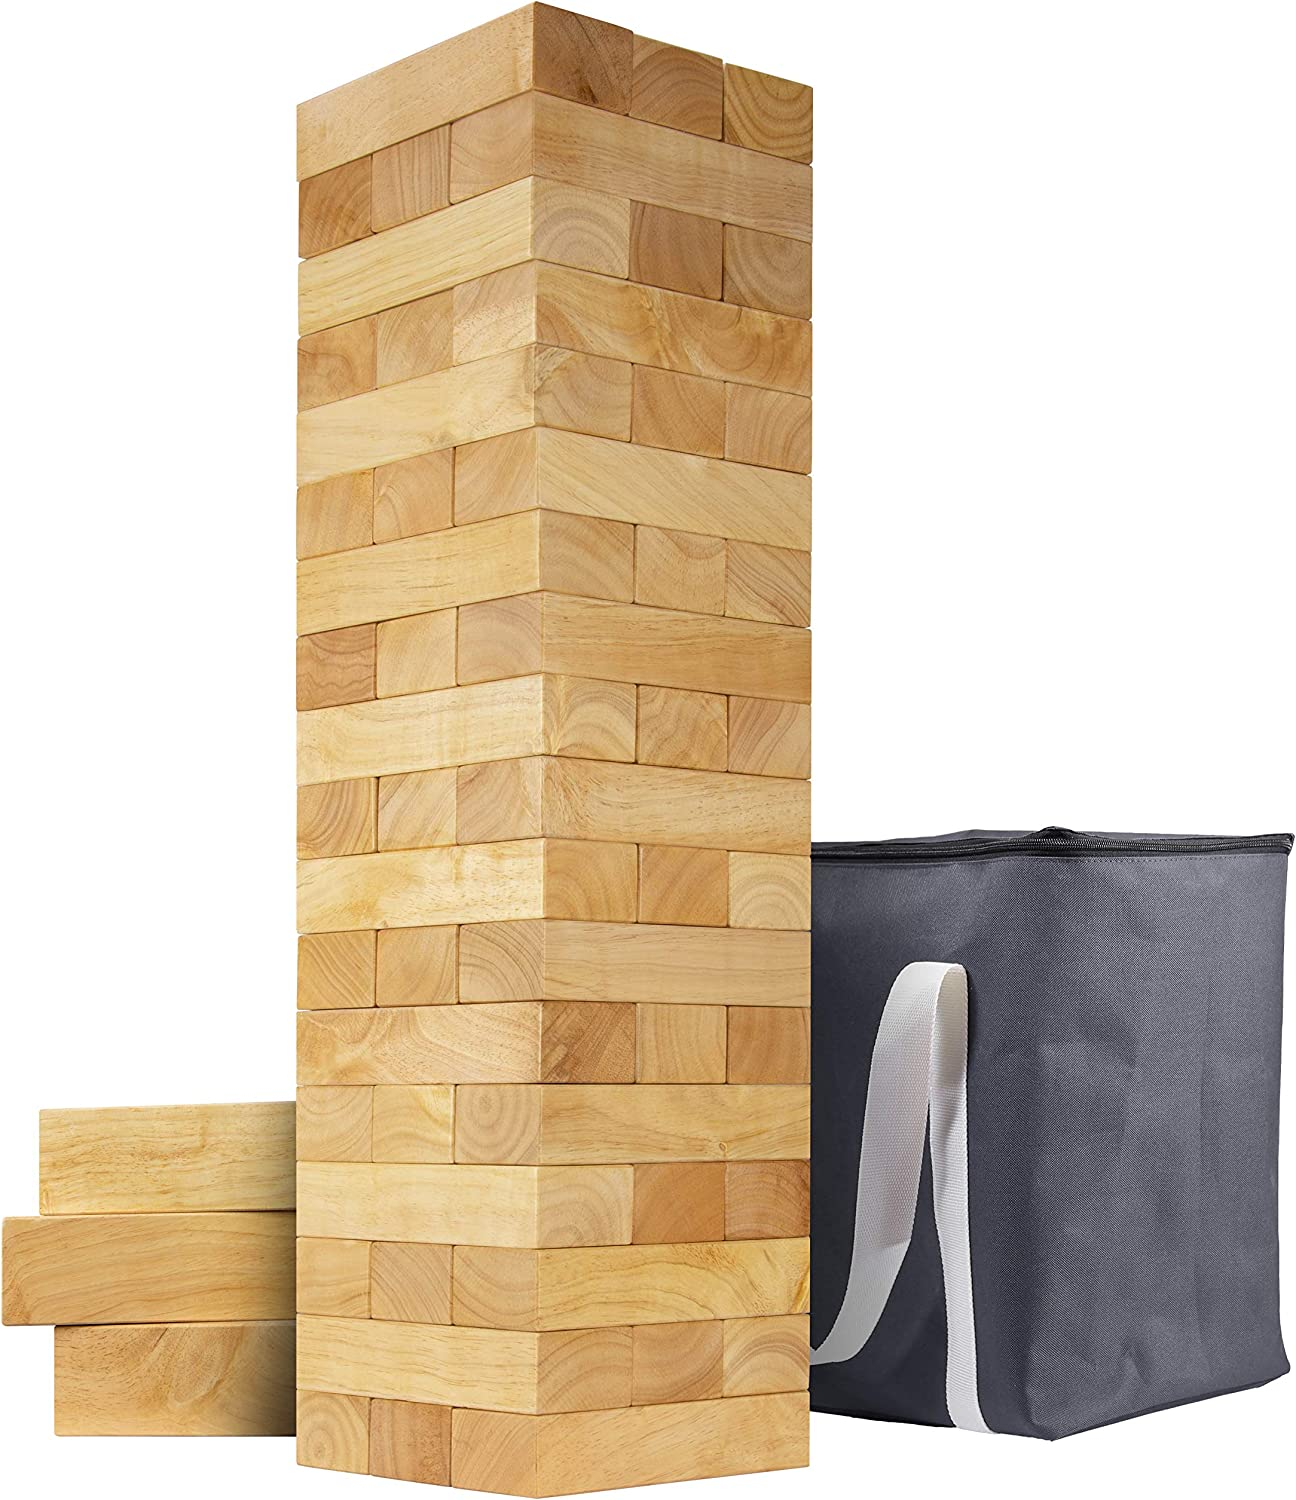 GoSports Giant Wooden 25% OFF Toppling Tower Fees free!! Stacks 5+ - to Feet Choos